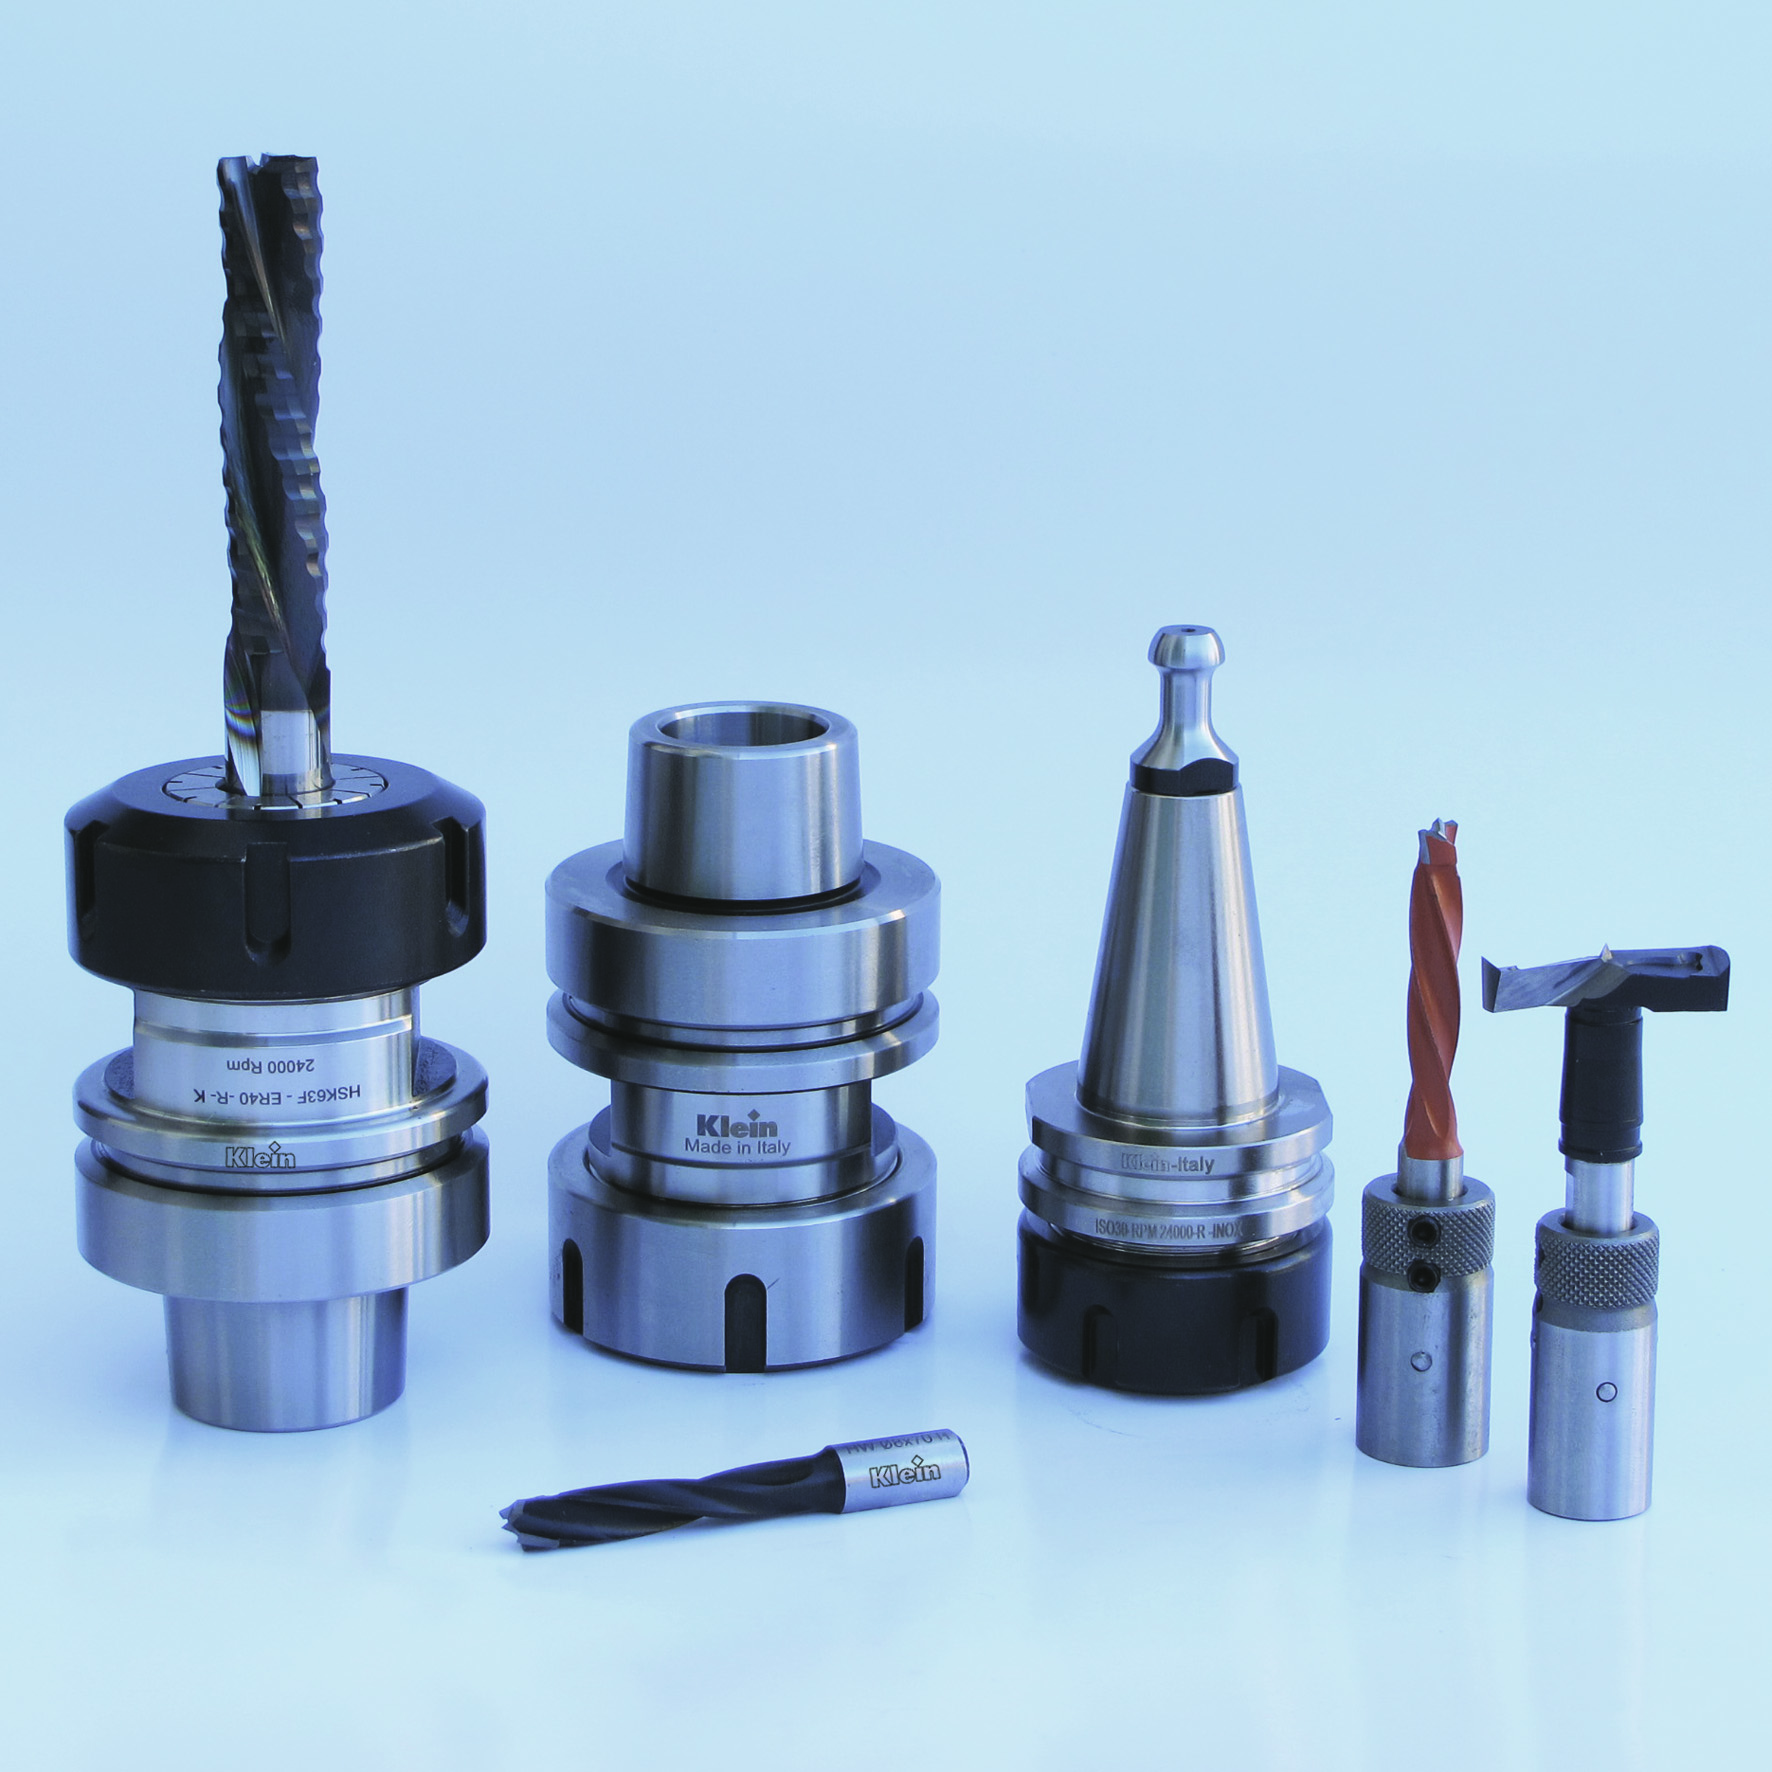 collet chucks, spring collets, clamping nuts, carbide bits, cnc automatic router